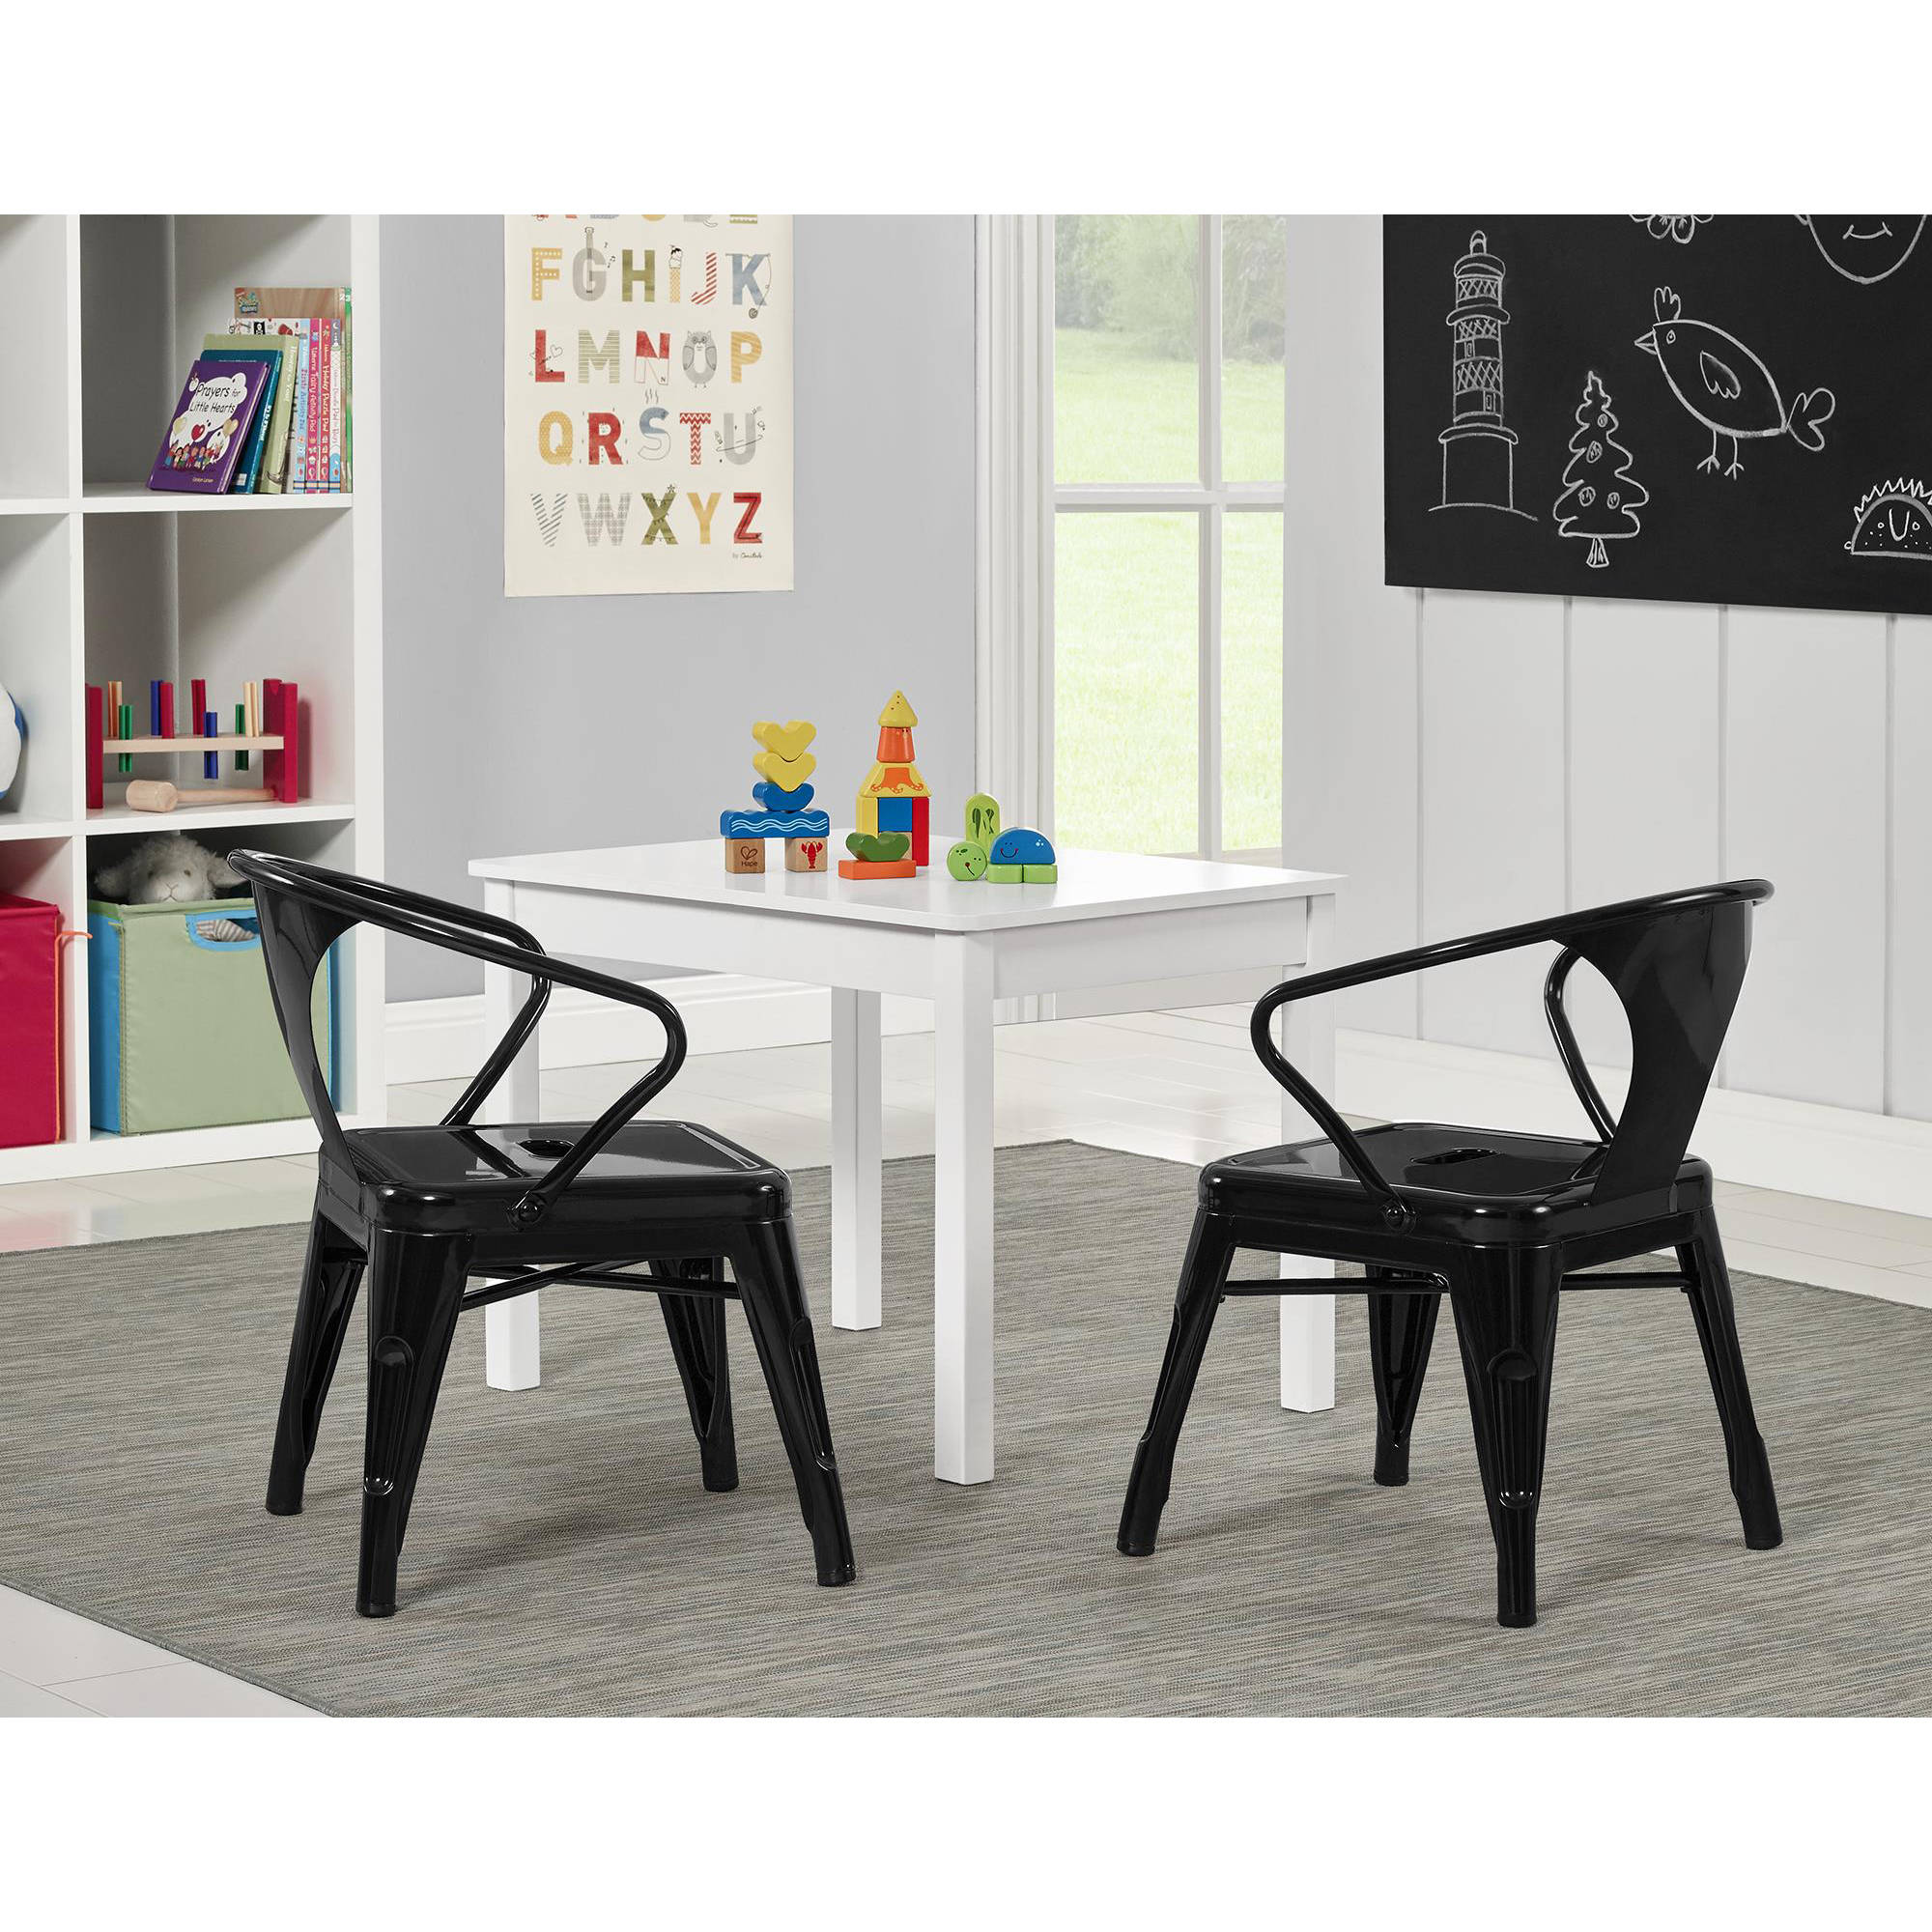 Better Homes and Gardens Metal Kids Chair, Set of 2, Multiple Colors